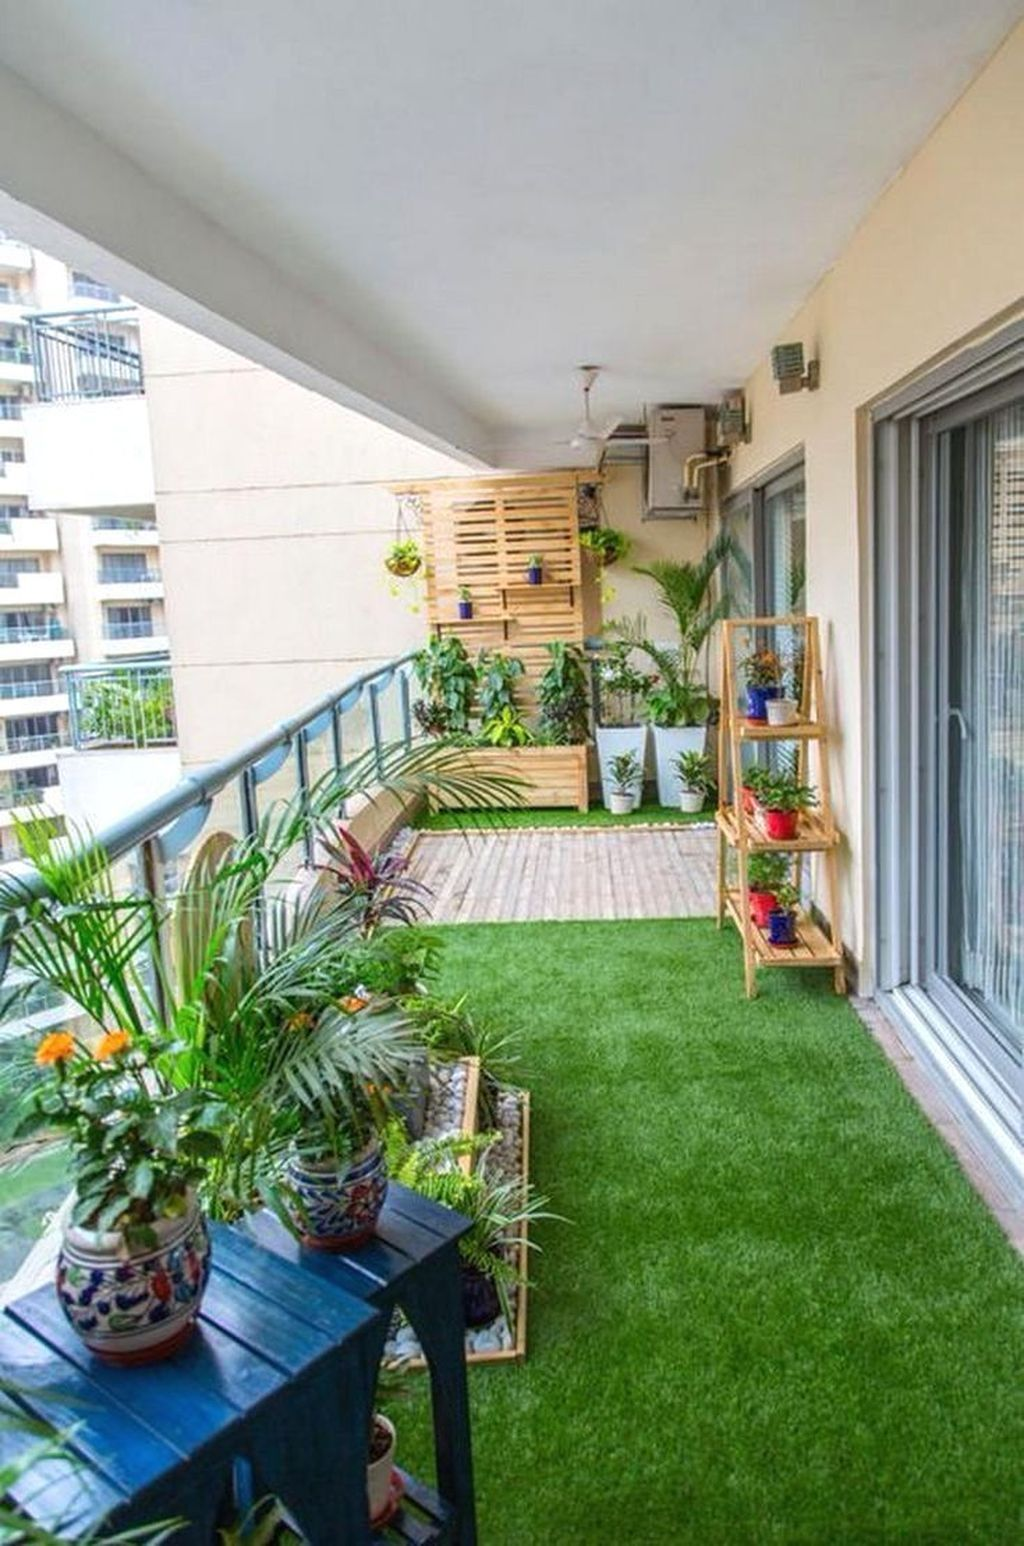 19+ Cozy Home Terrace Design Ideas For Summer To Try Nowaday